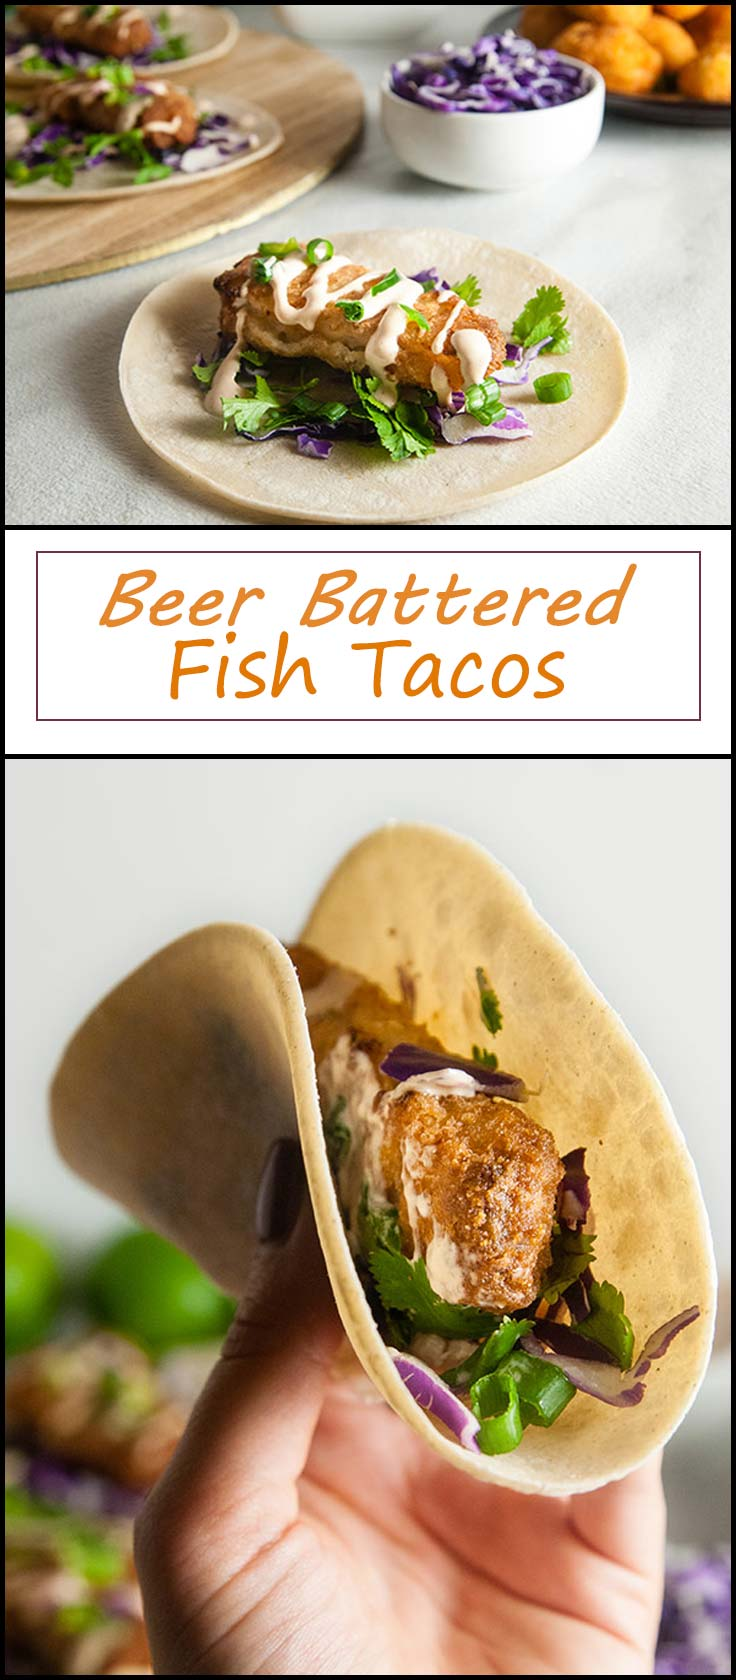 Perfect for busy weeknight dinners Quick and Easy Beer Battered Fish Tacos with Chipotle Lime Crema from www.seasonedsprinkles.com